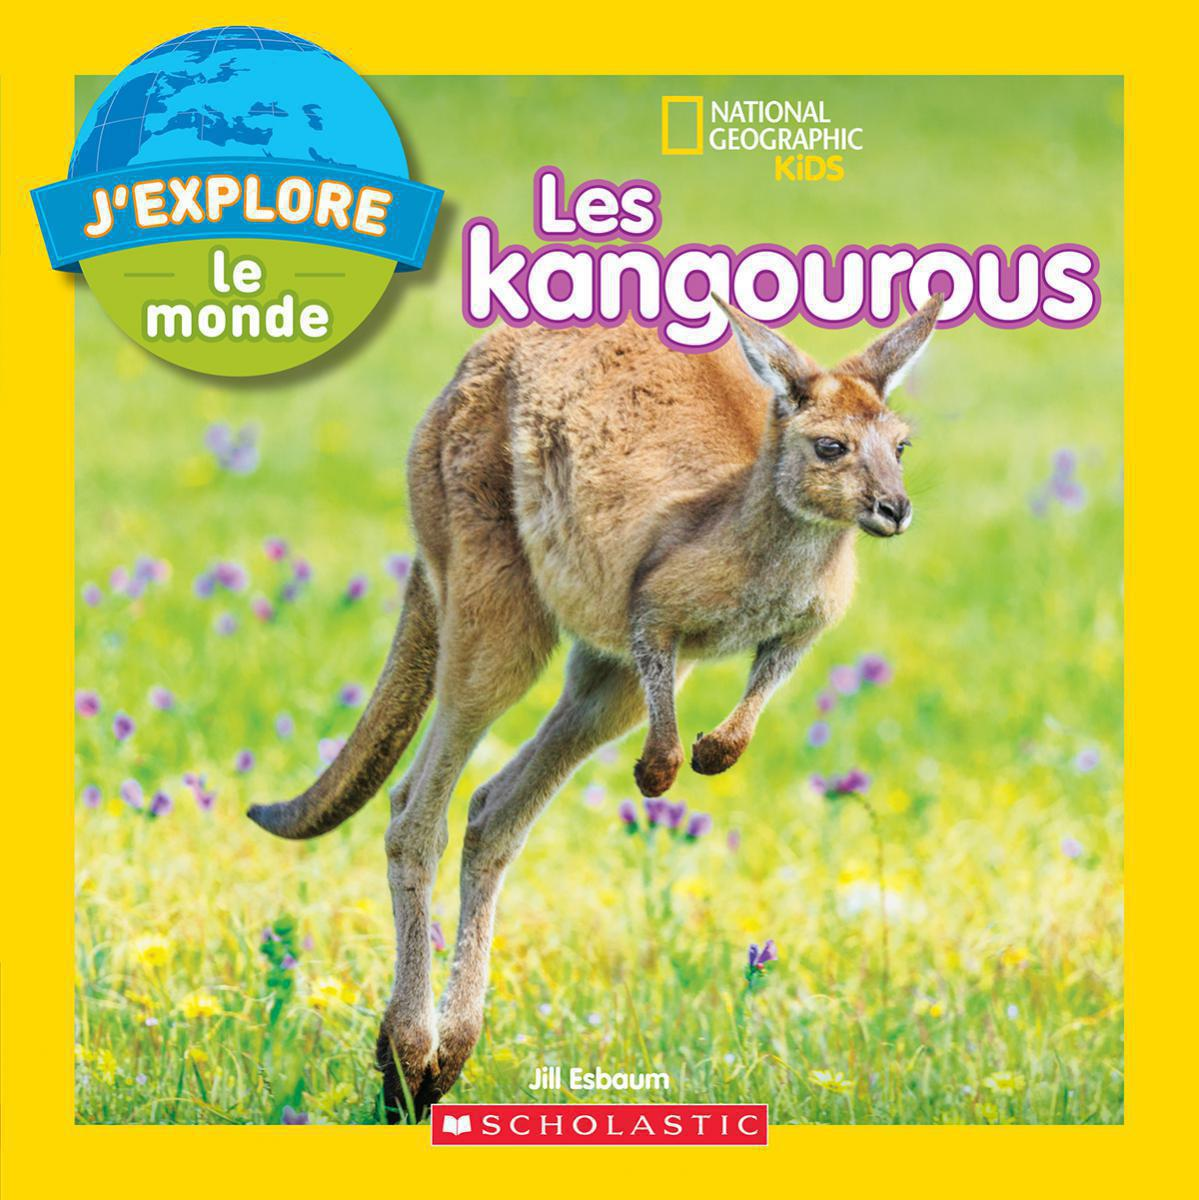 National Geographic Kids : J'explore le monde : Les kangourous